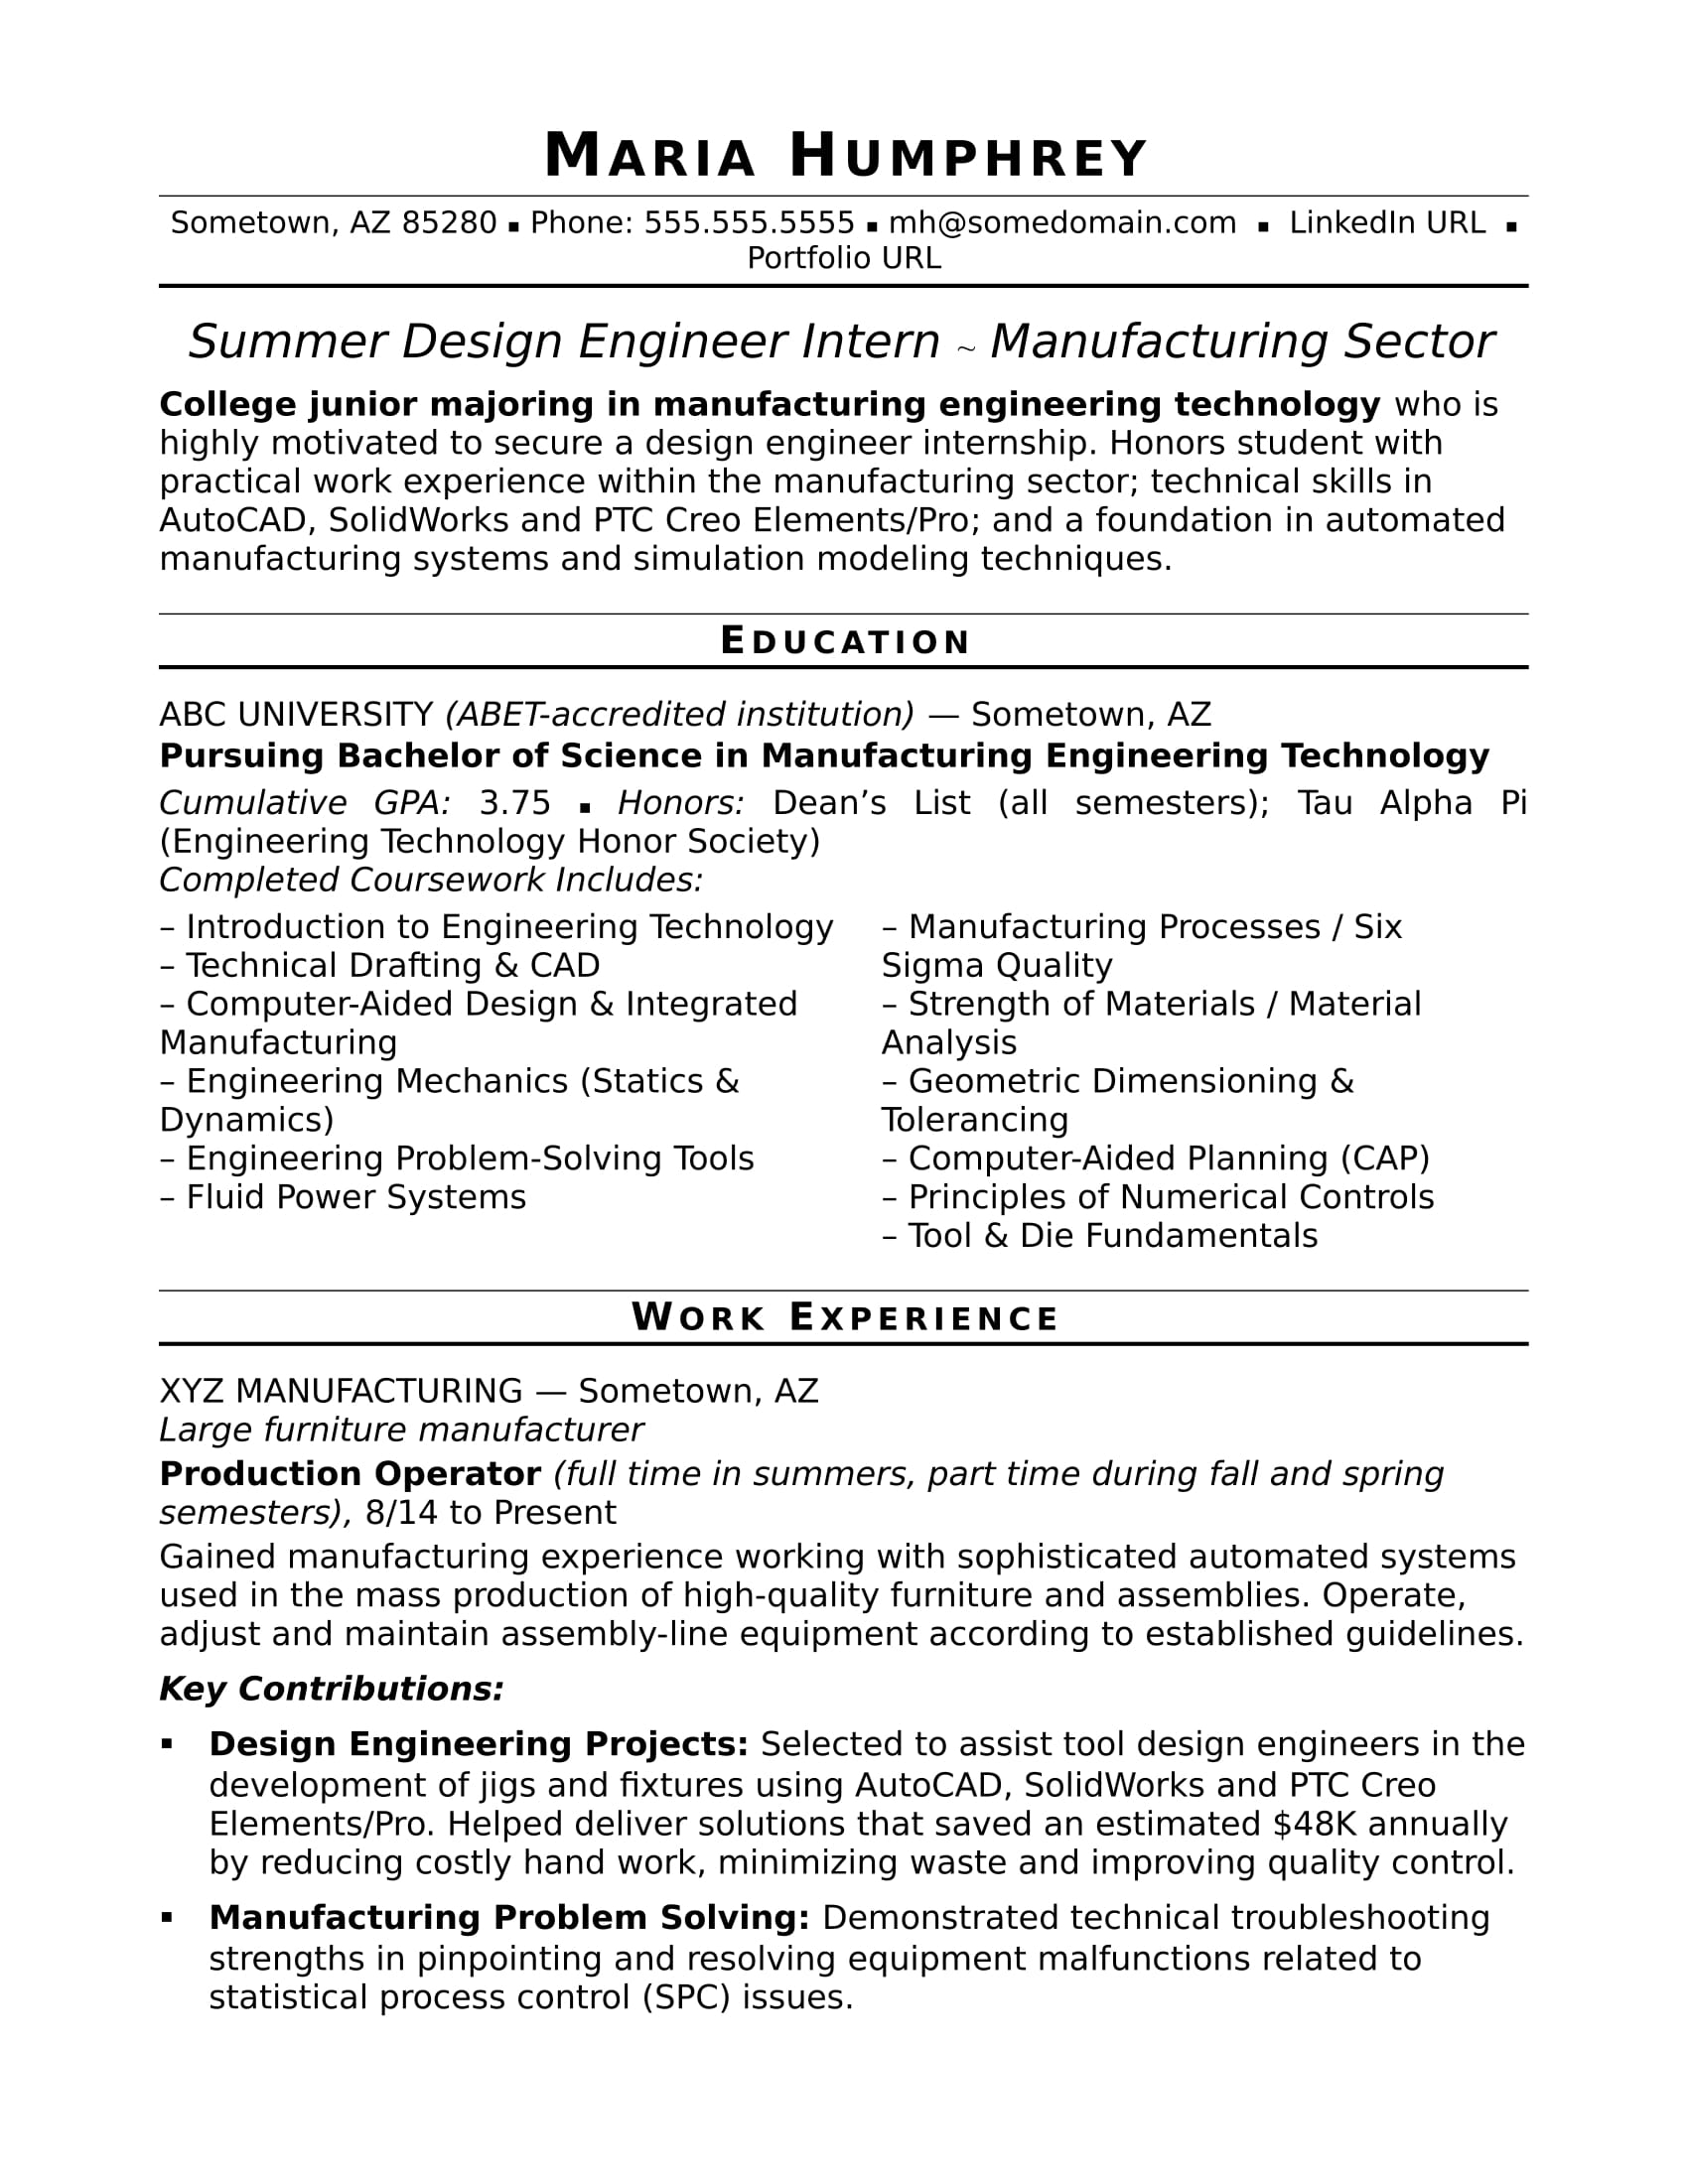 sample resume for an entry level design engineer monster engineering internship Resume Engineering Internship Resume